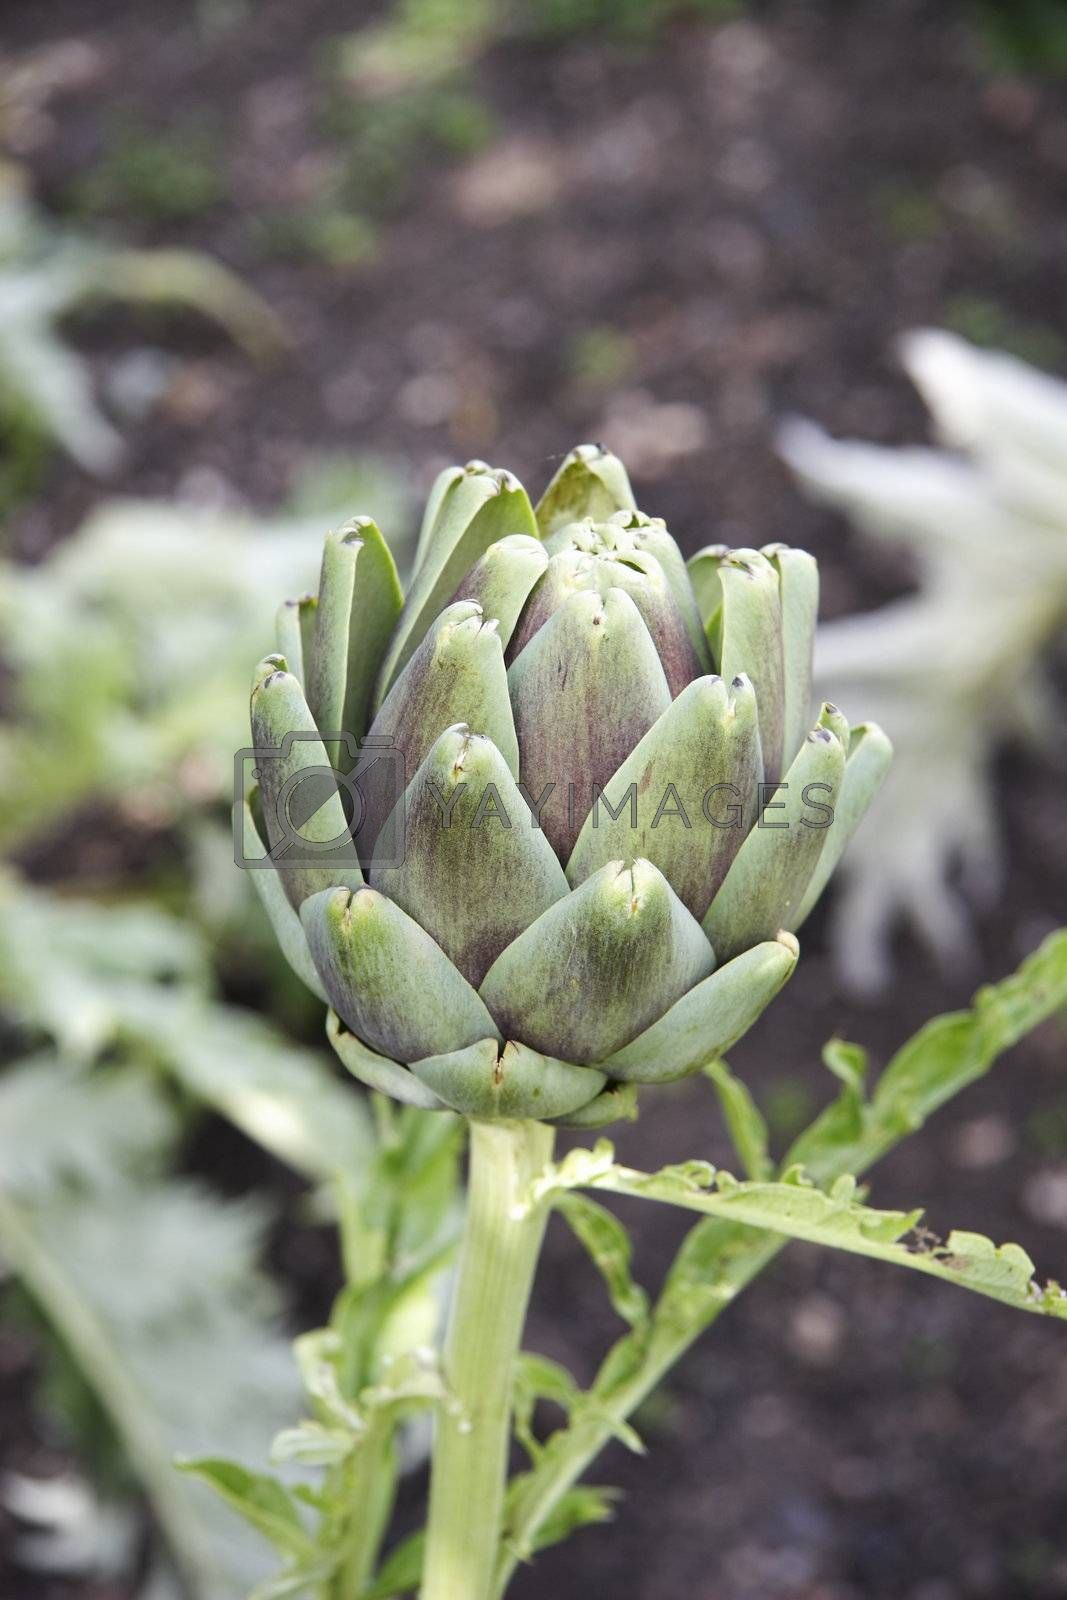 details of an artichoke growing in the garden against a grey background